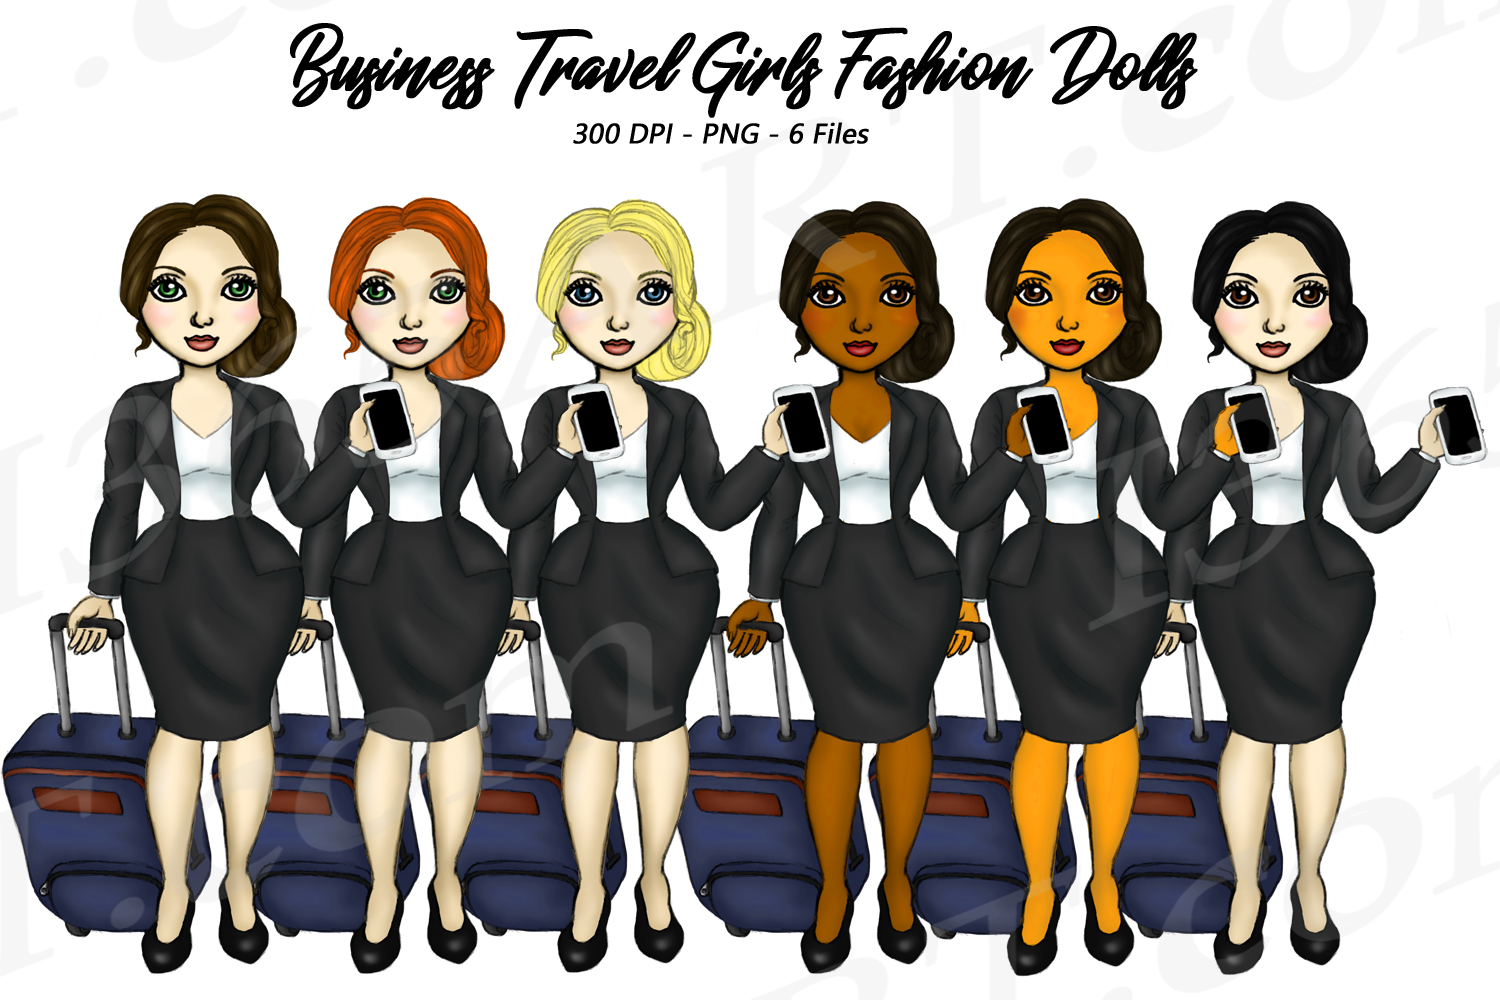 Business Travel Clipart Girls, Fashion Doll Illustrations example image 1